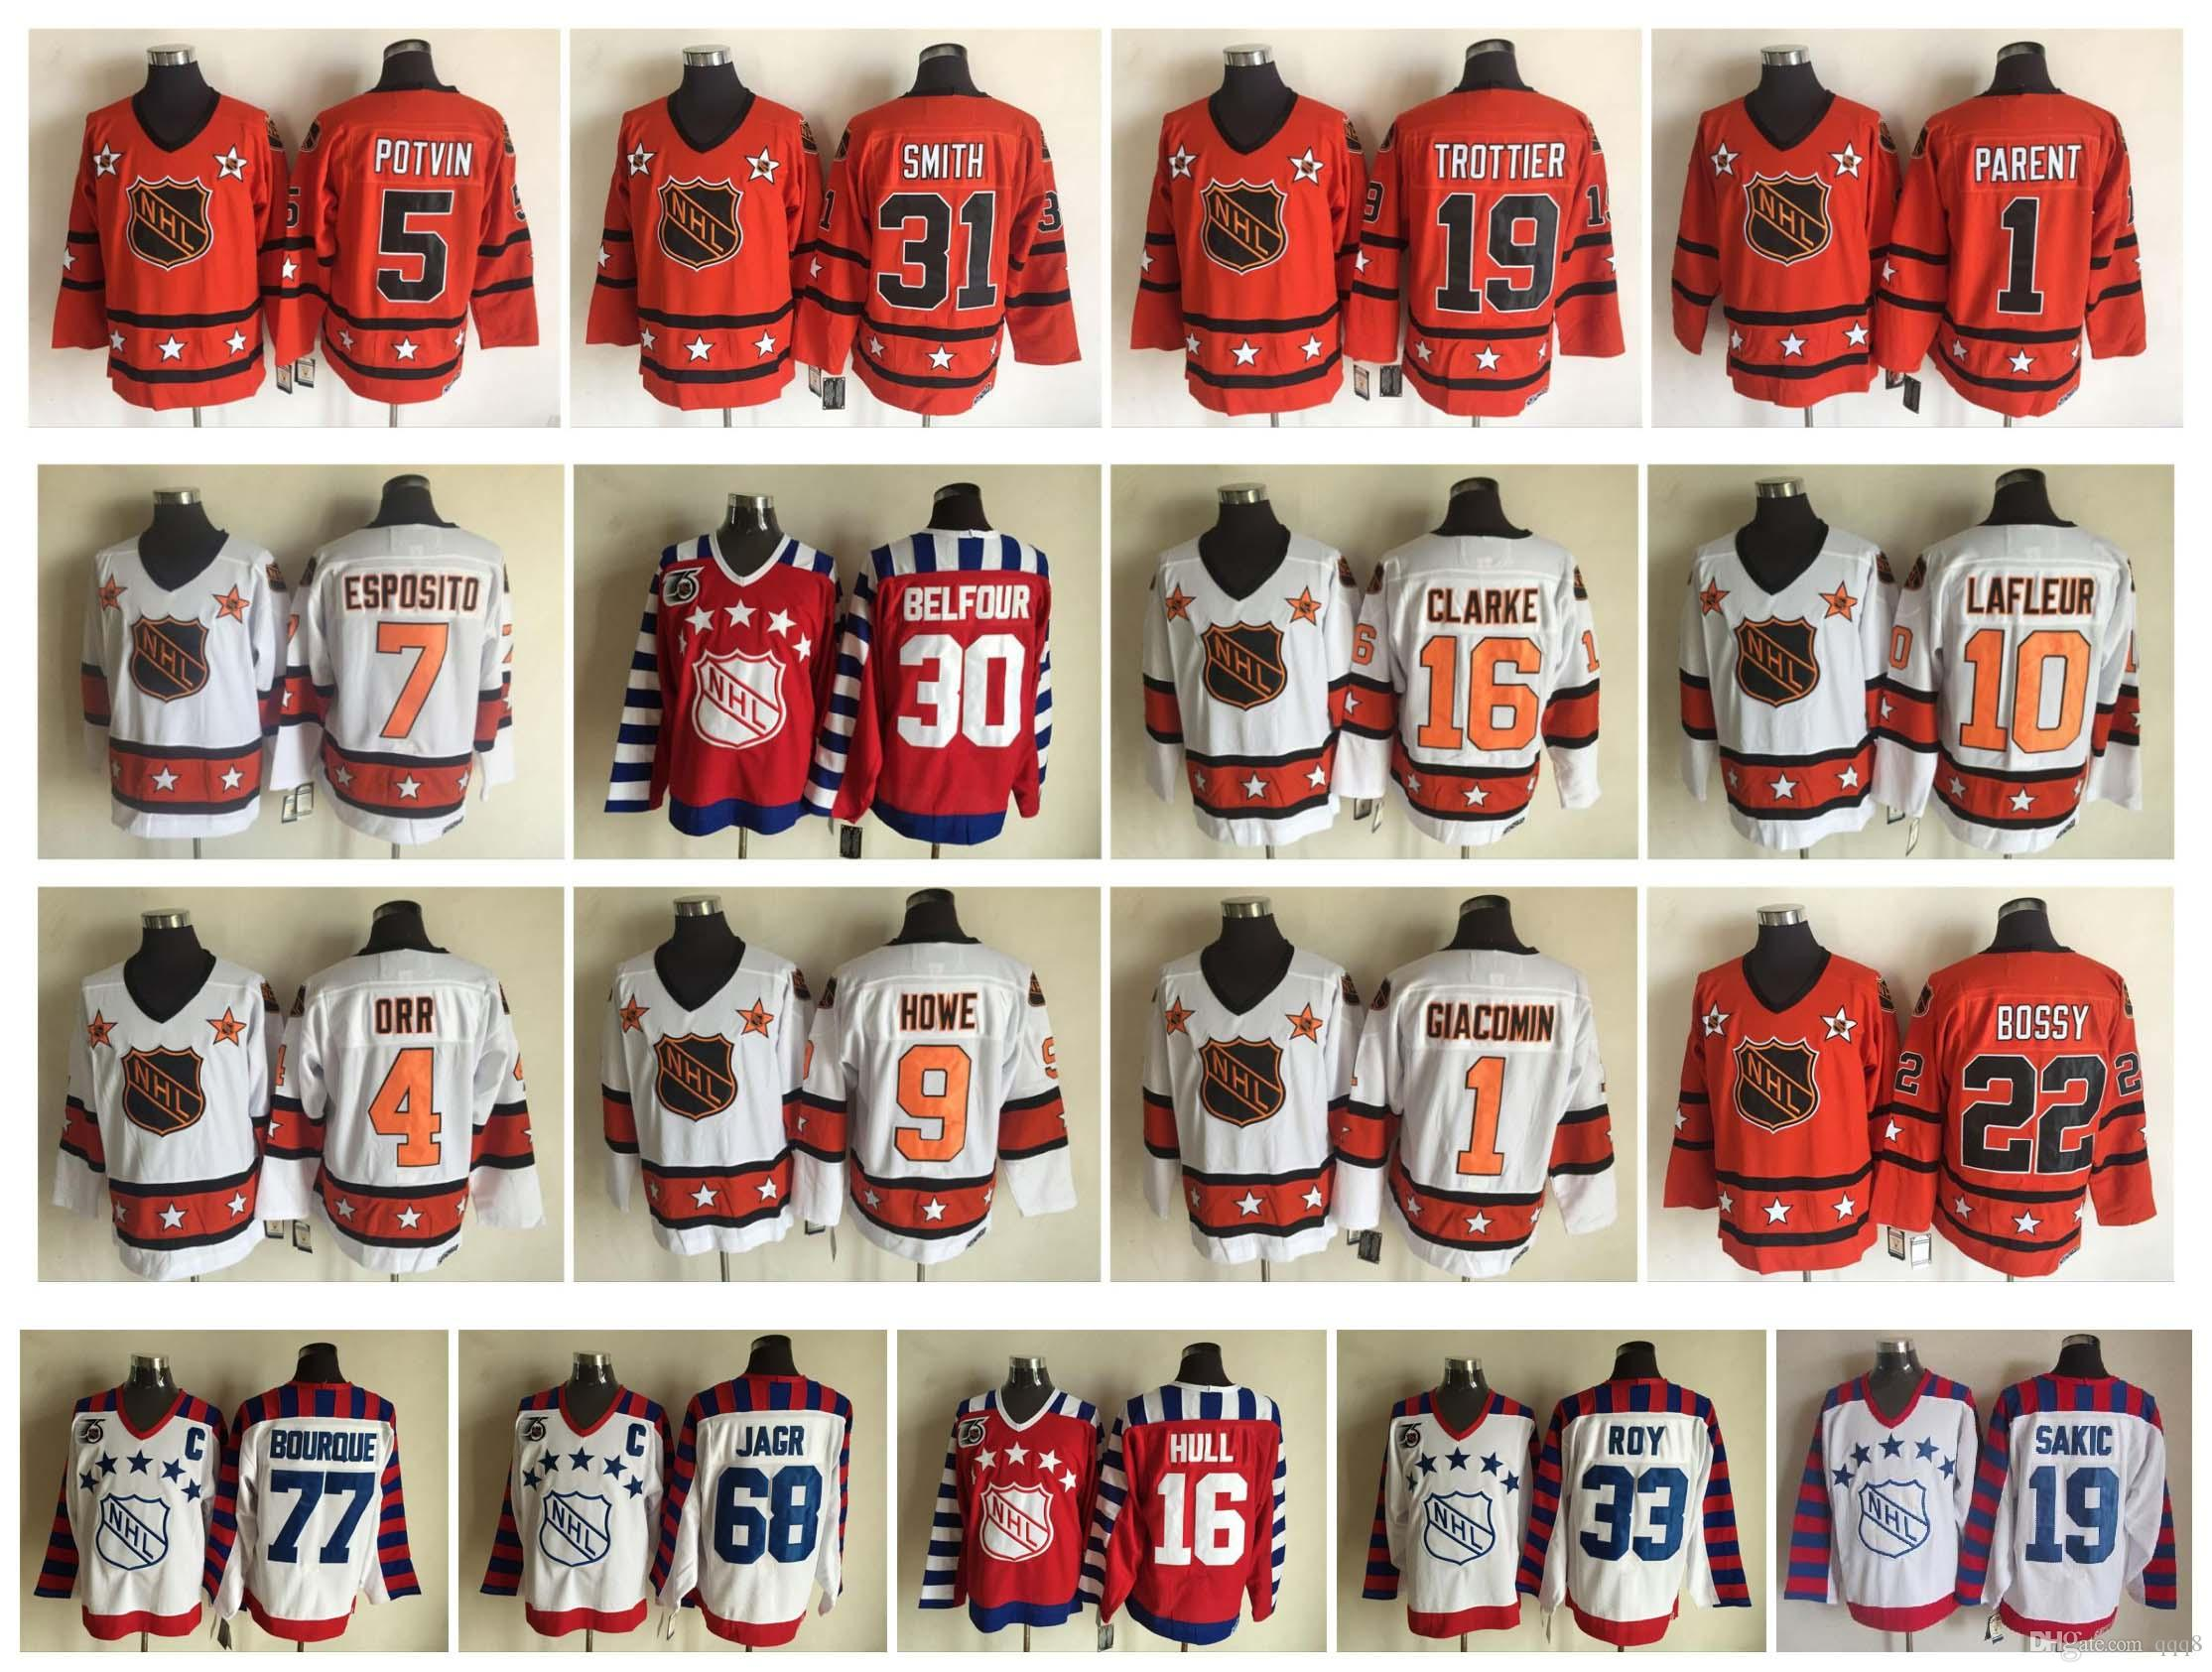 pretty nice 00480 ffaab All Star Jersey 19 Steve Yzerman 33 Patrick Roy 16 Brett Hull 77 Ray  Bourque 68 Jaromir Jagr 19 Joe Sakic 11 Mark Messier 30 Belfour Hockey